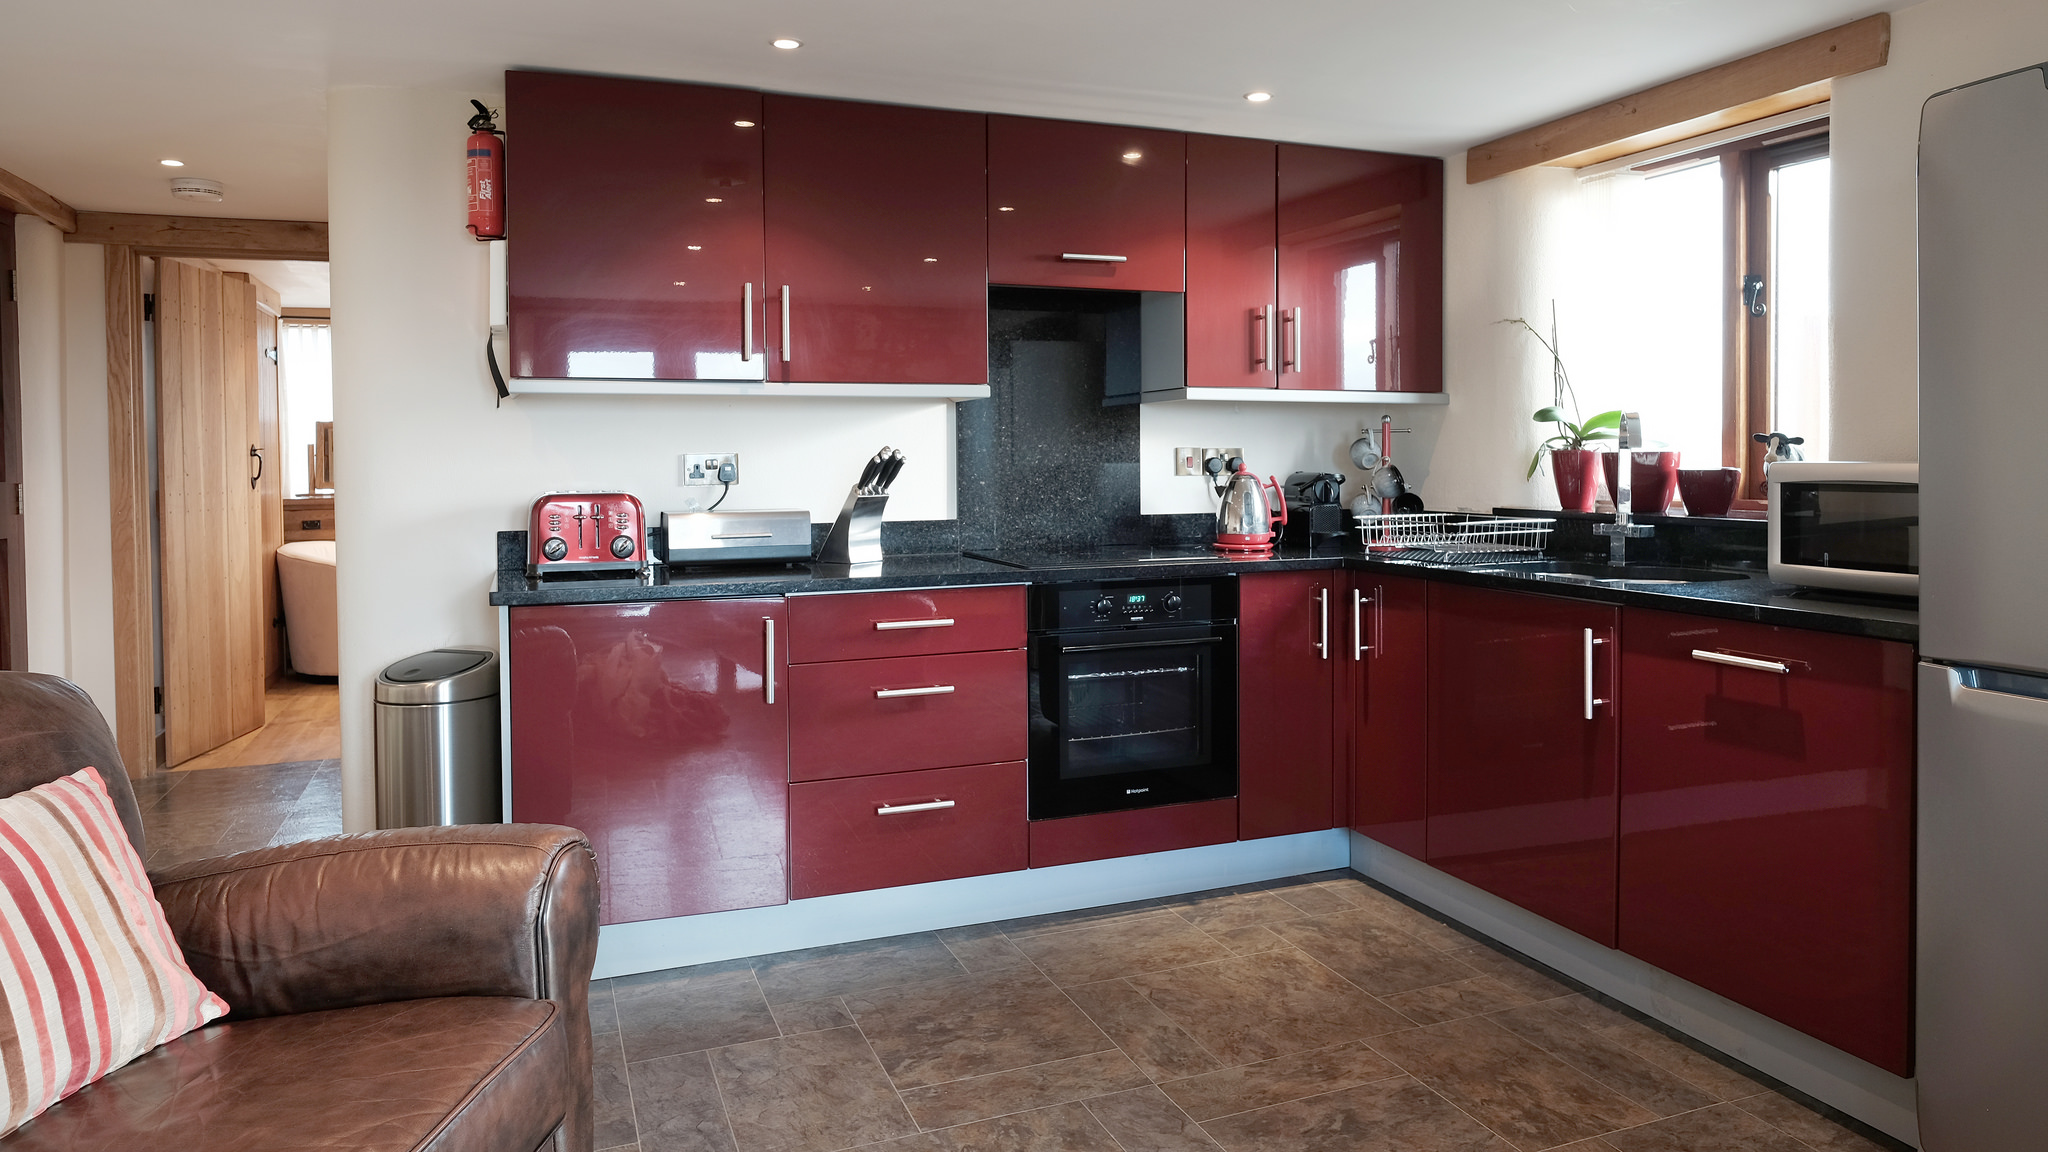 Red glossy kitchen with black granite worktop and red accessories